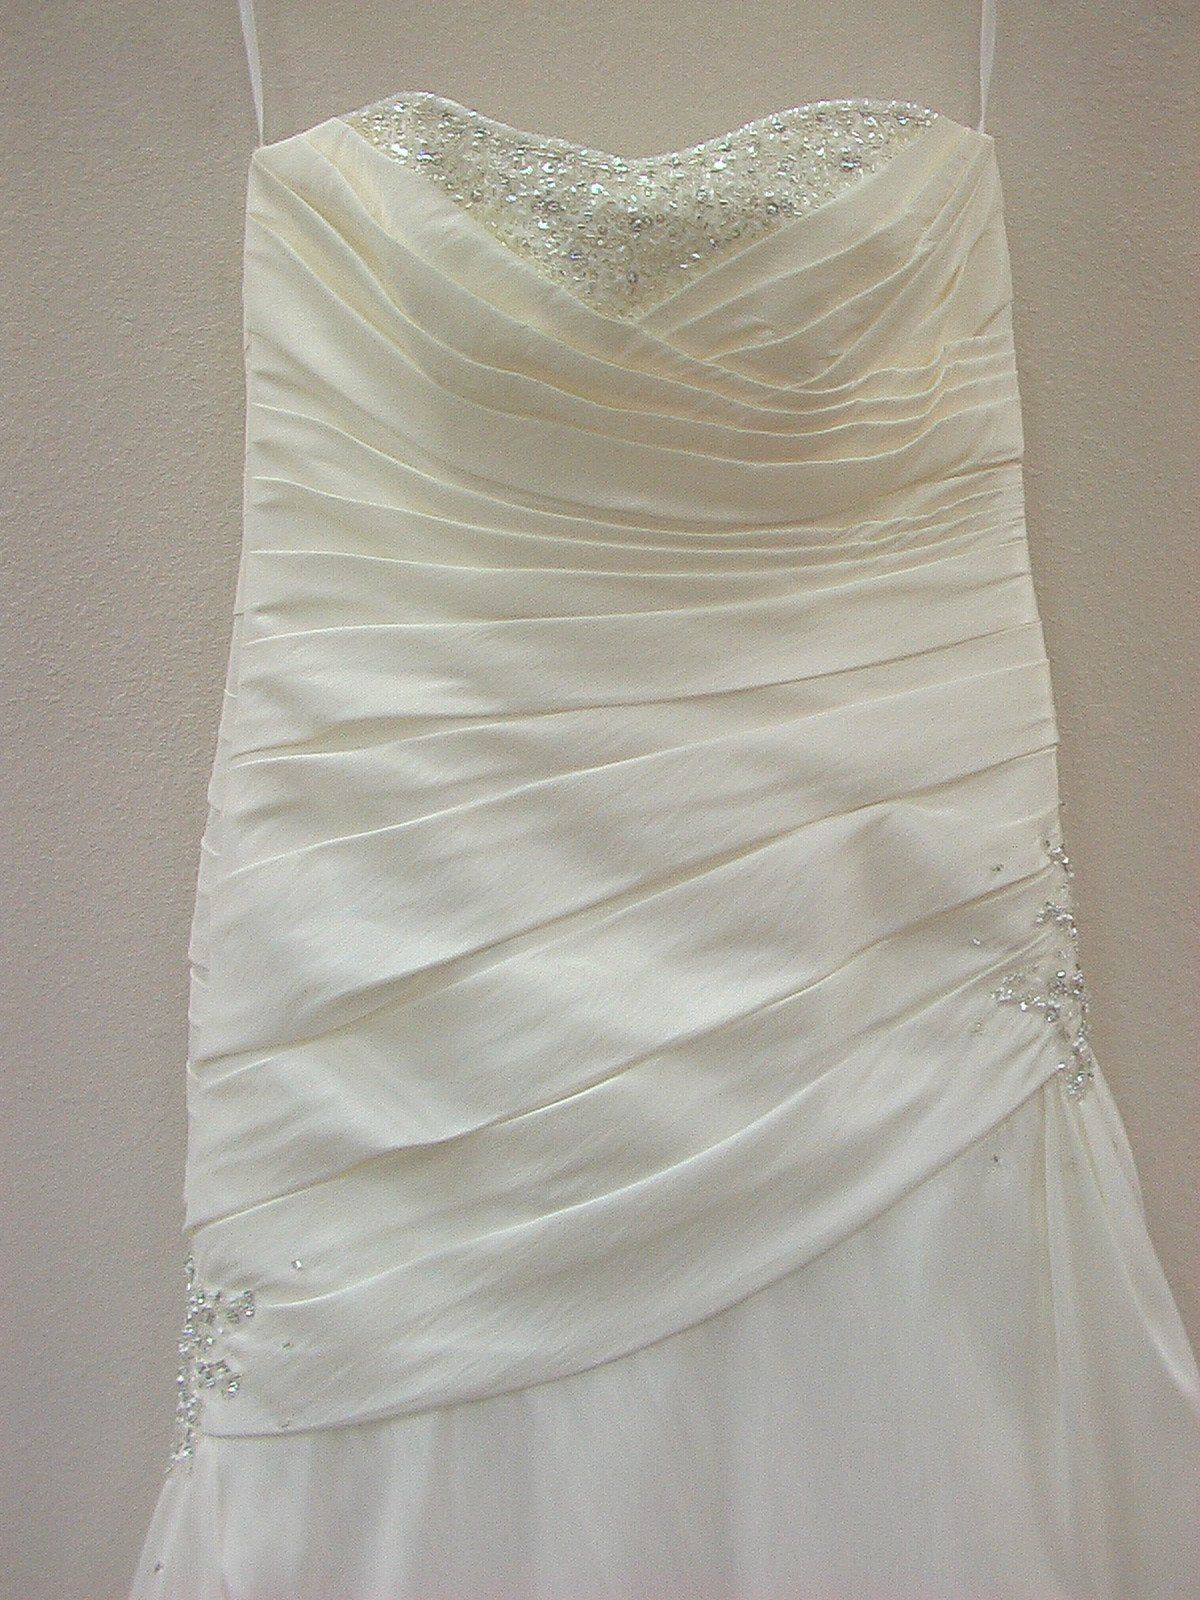 Mori Lee Blu 4602 Ivory/Silver size 12 In Stock Wedding Dress - Tom's Bridal